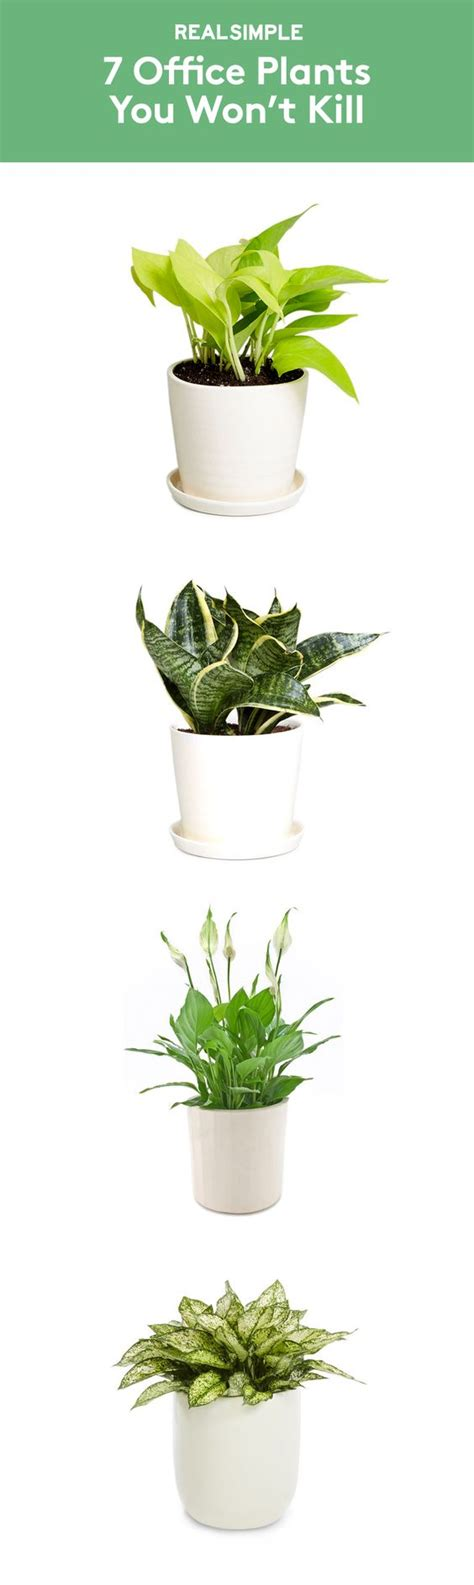 7 office plants you won t kill kantoren planten en